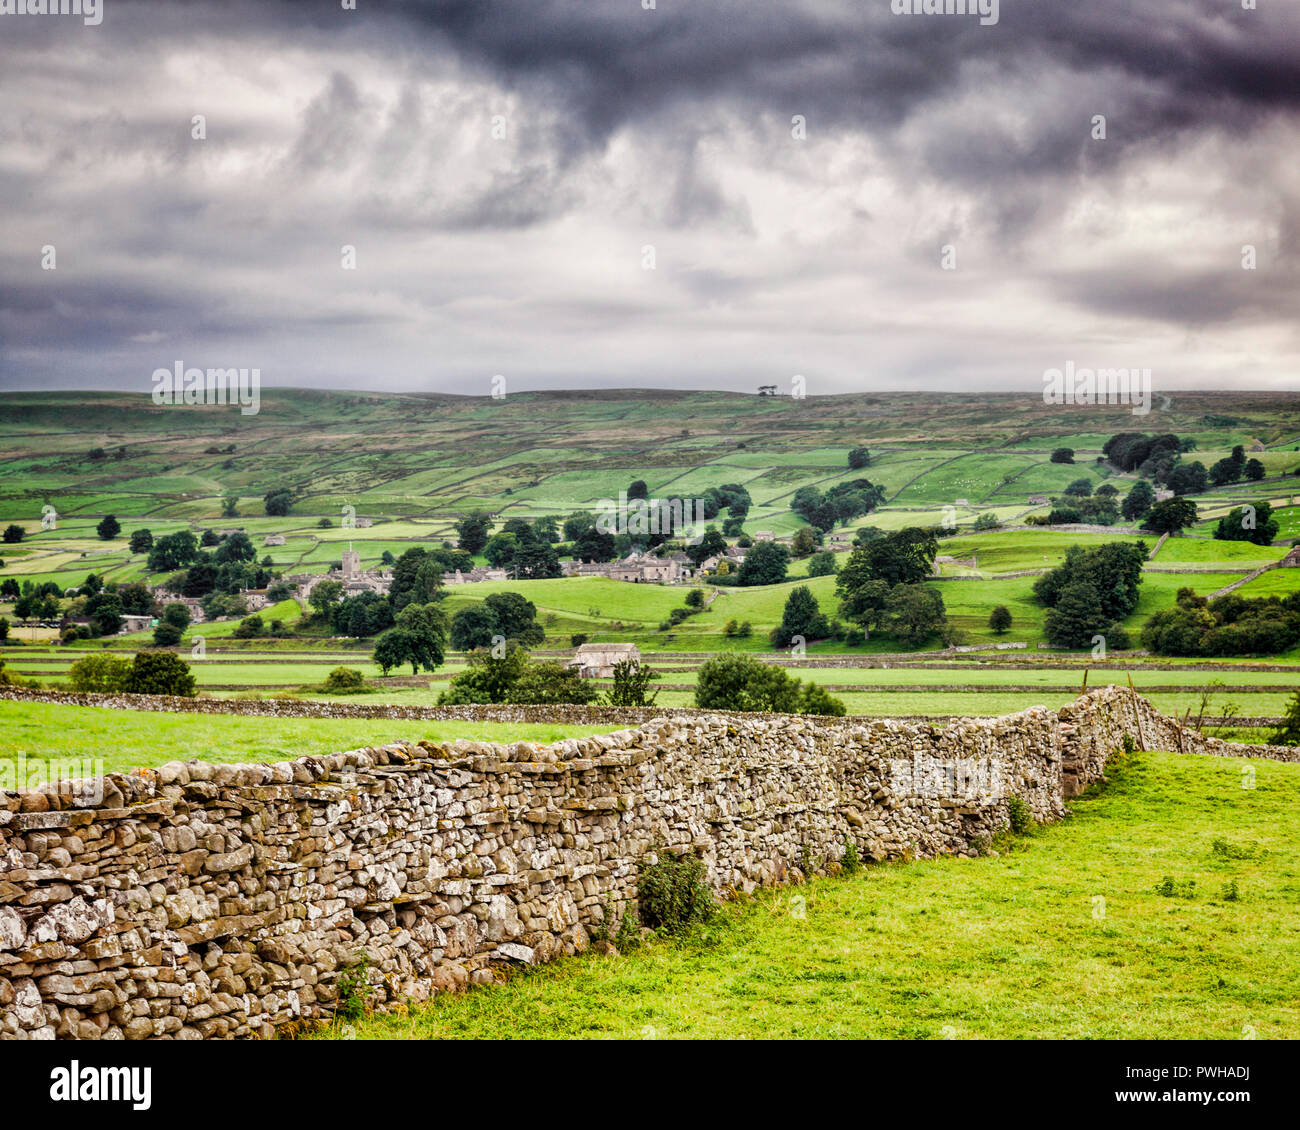 Wensleydale and the village of Askrigg, Yorkshire Dales, England, on an overcast day with a dry stone wall in the foreground. Stock Photo